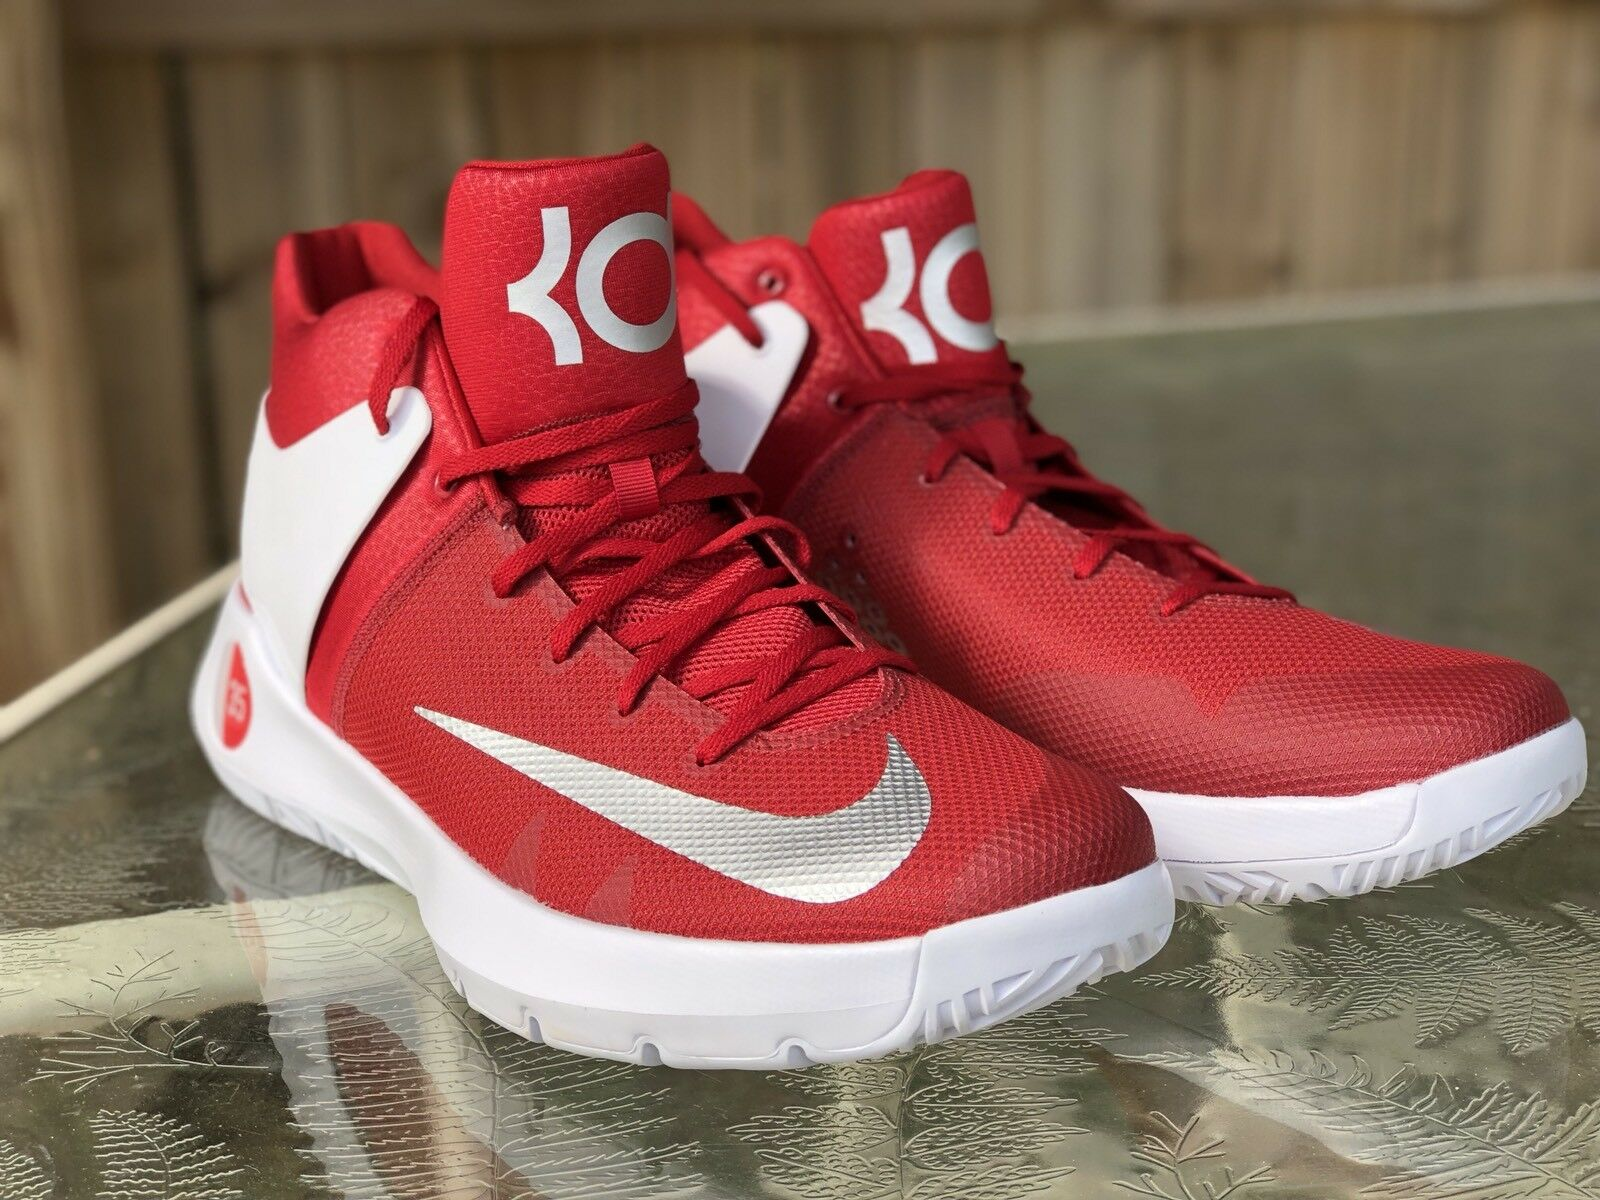 NWOB Red Nike Kevin Durant KD Trey 5 IV Basketball Shoes 856484-661 Mens Comfortable Great discount